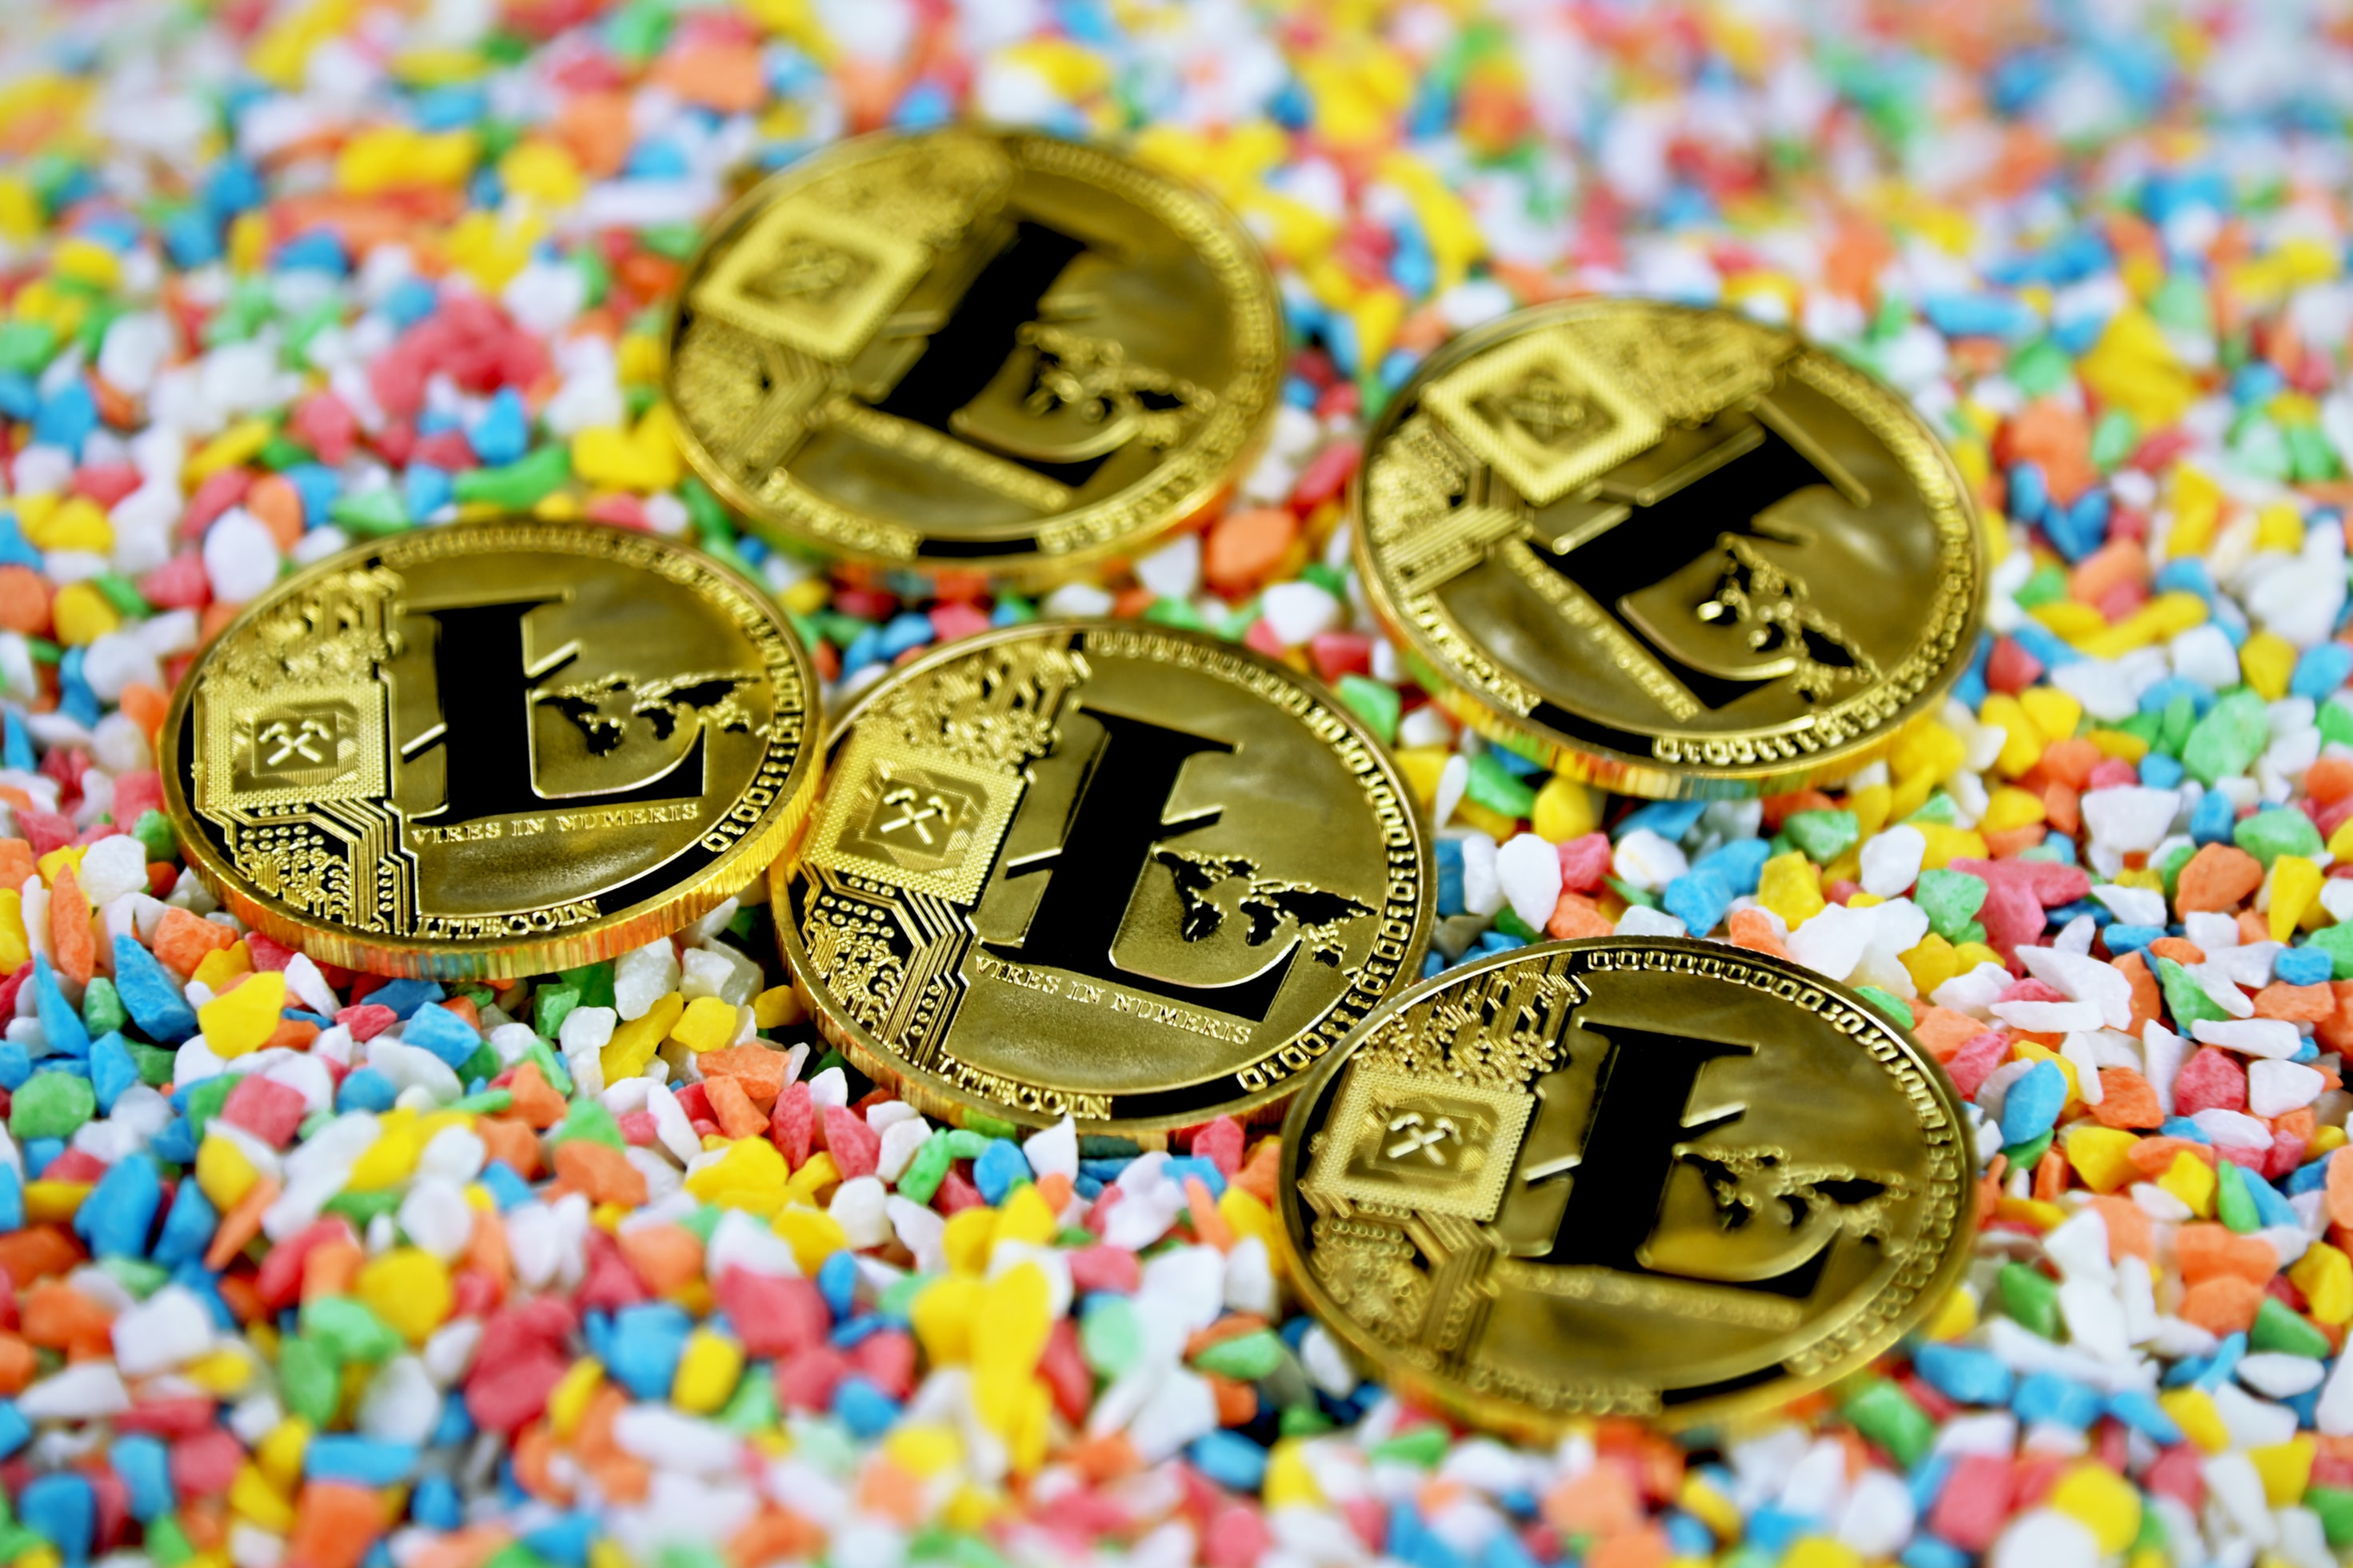 Which Cryptocurrency Do You Think Is Better Bitcoin or Litecoin?